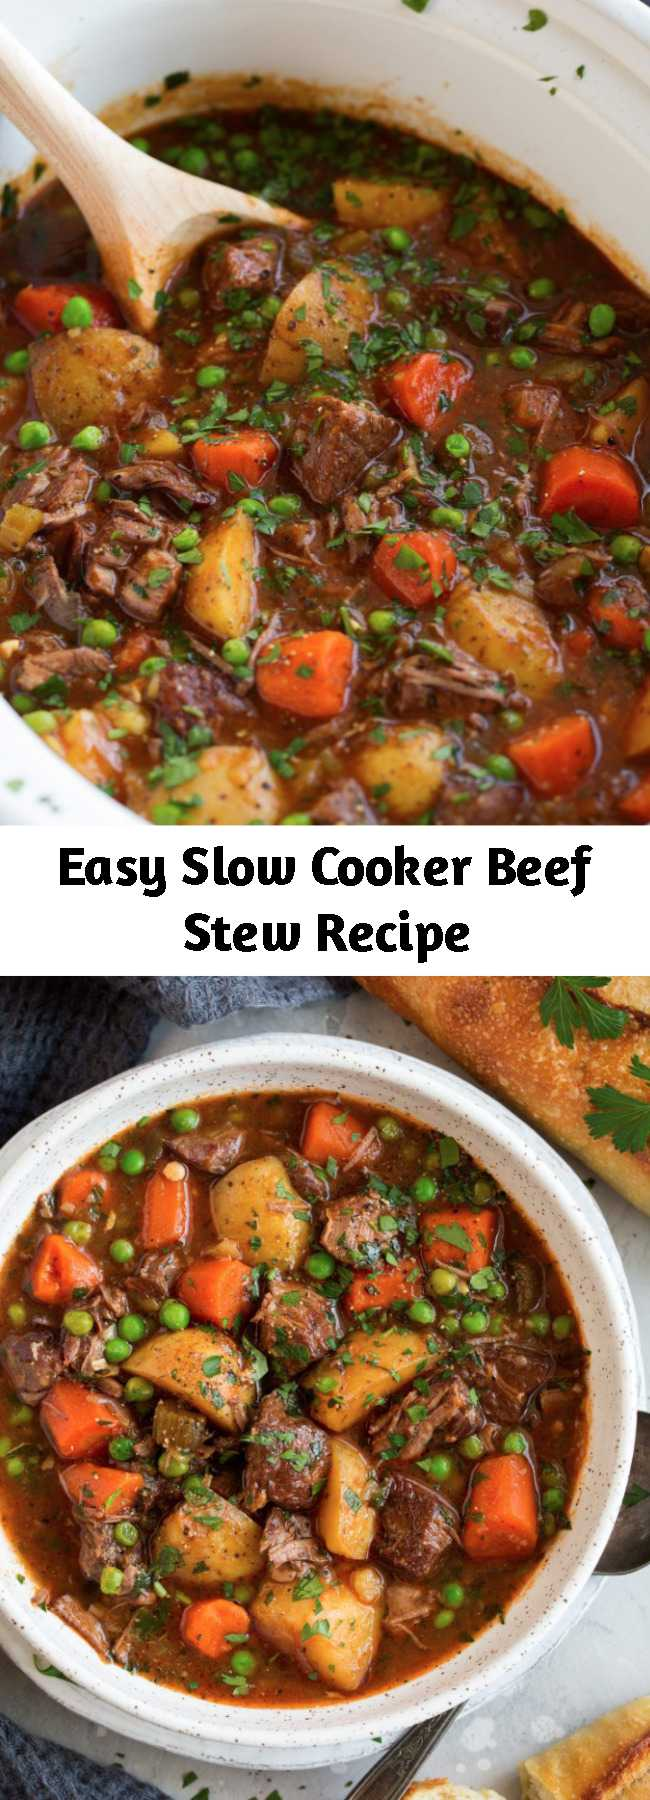 Easy Slow Cooker Beef Stew Recipe - This beef stew is the definition of comfort food! It is packed with flavor and that low and slow cooking yields the most tender beef. A staple recipe! Perfect cozy comfort food! #beefstew #soup #crockpot #recipe